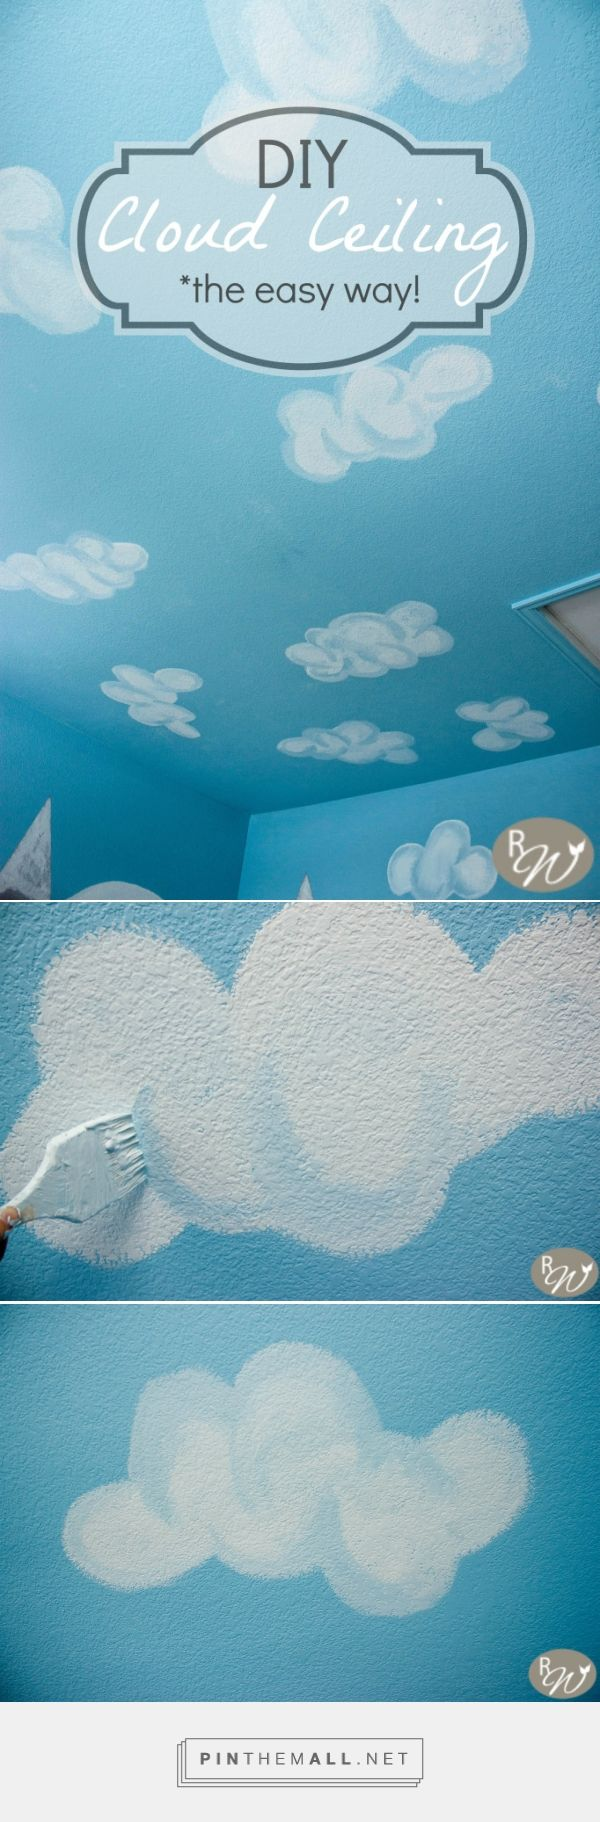 DIY cloud ceiling, the EASY way! | therusticwillow.com